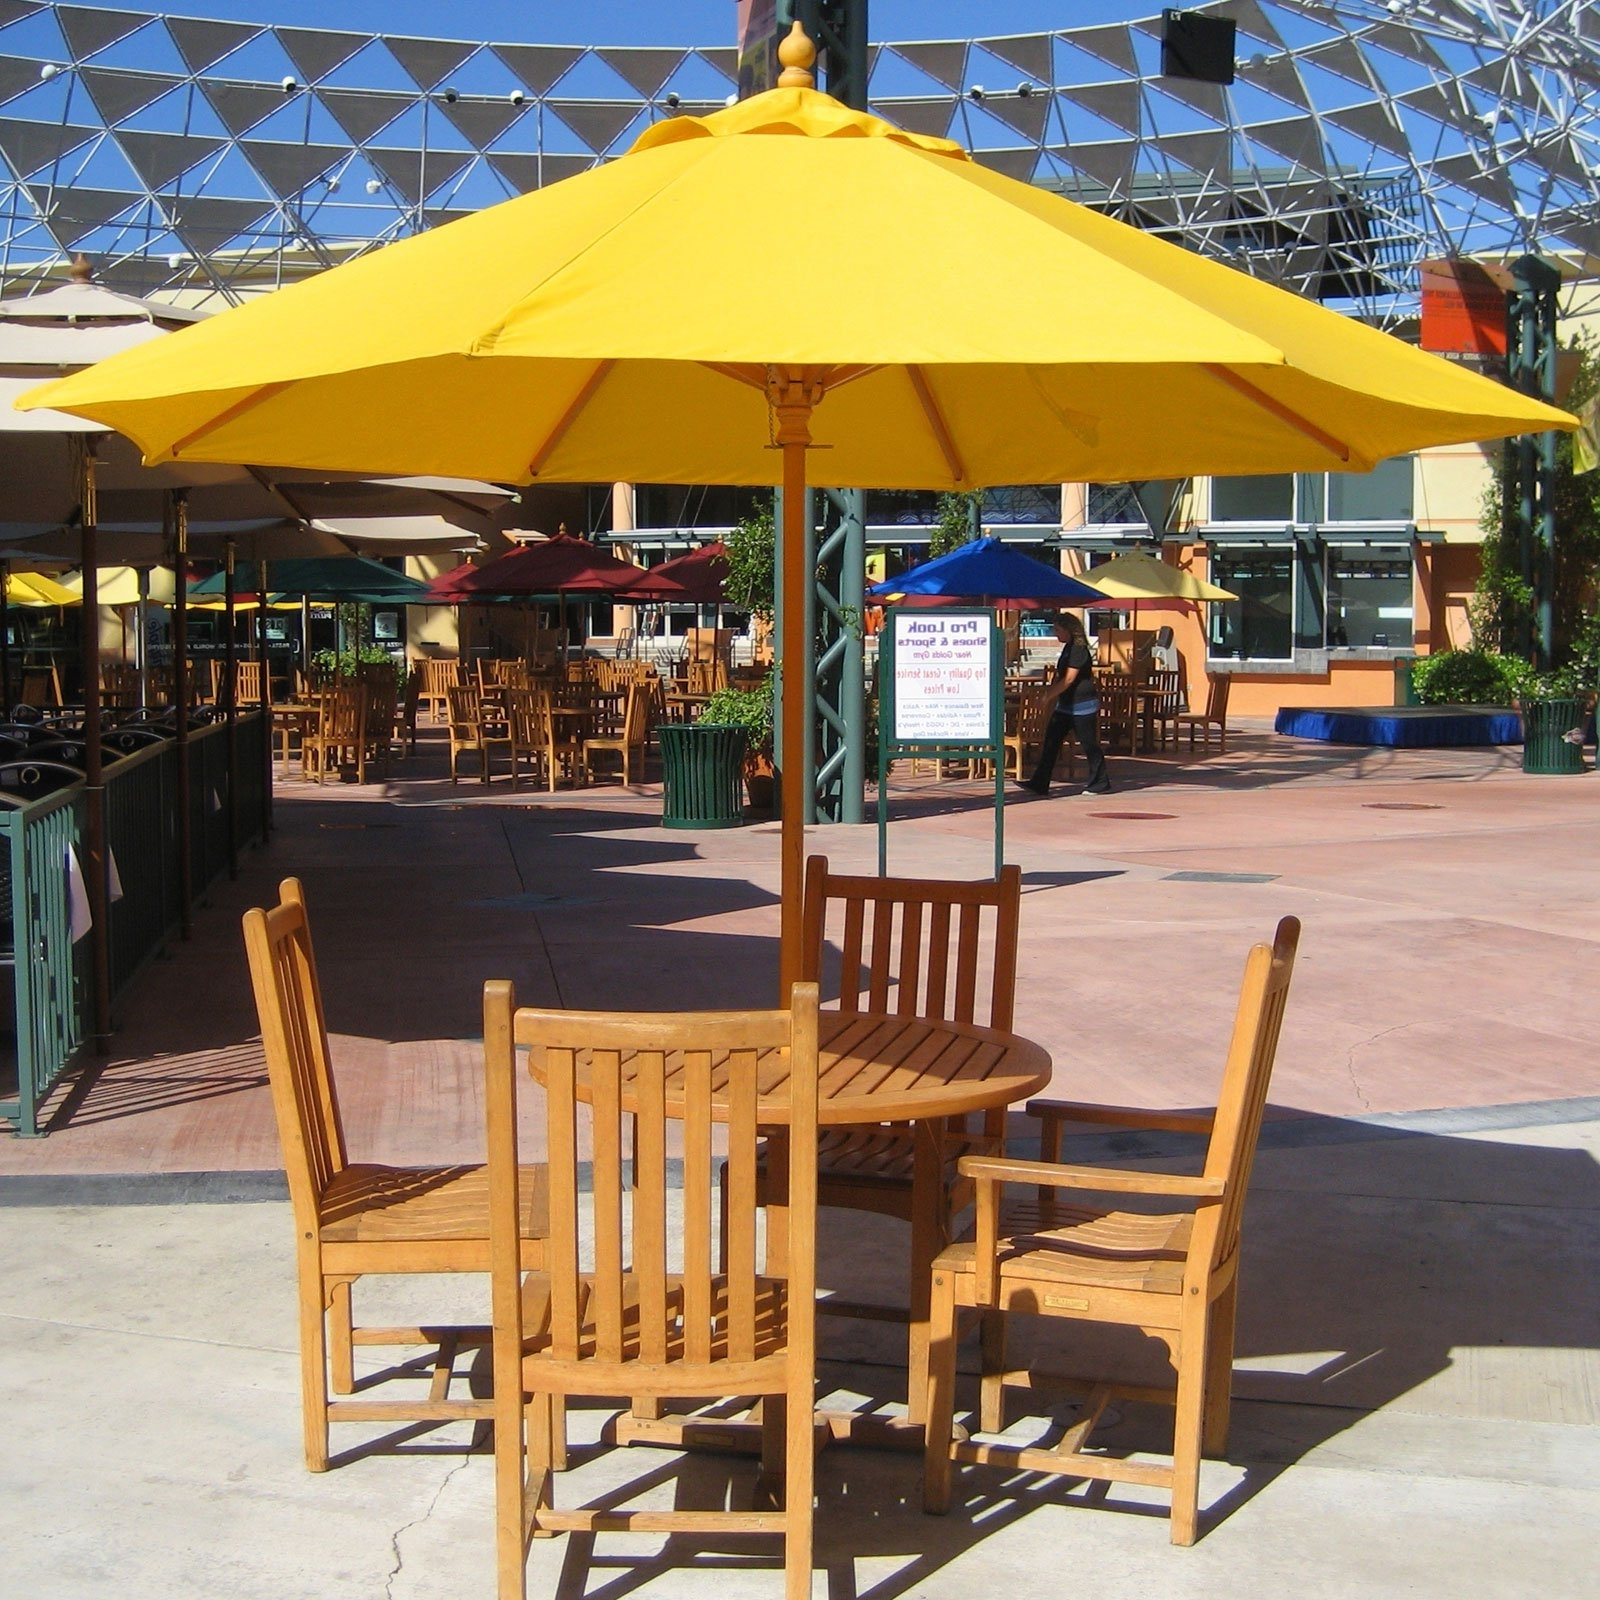 Fashionable Rustic Patio Table Umbrella — Wilson Home Ideas : Making Patio Table In Wooden Patio Umbrellas (View 3 of 20)